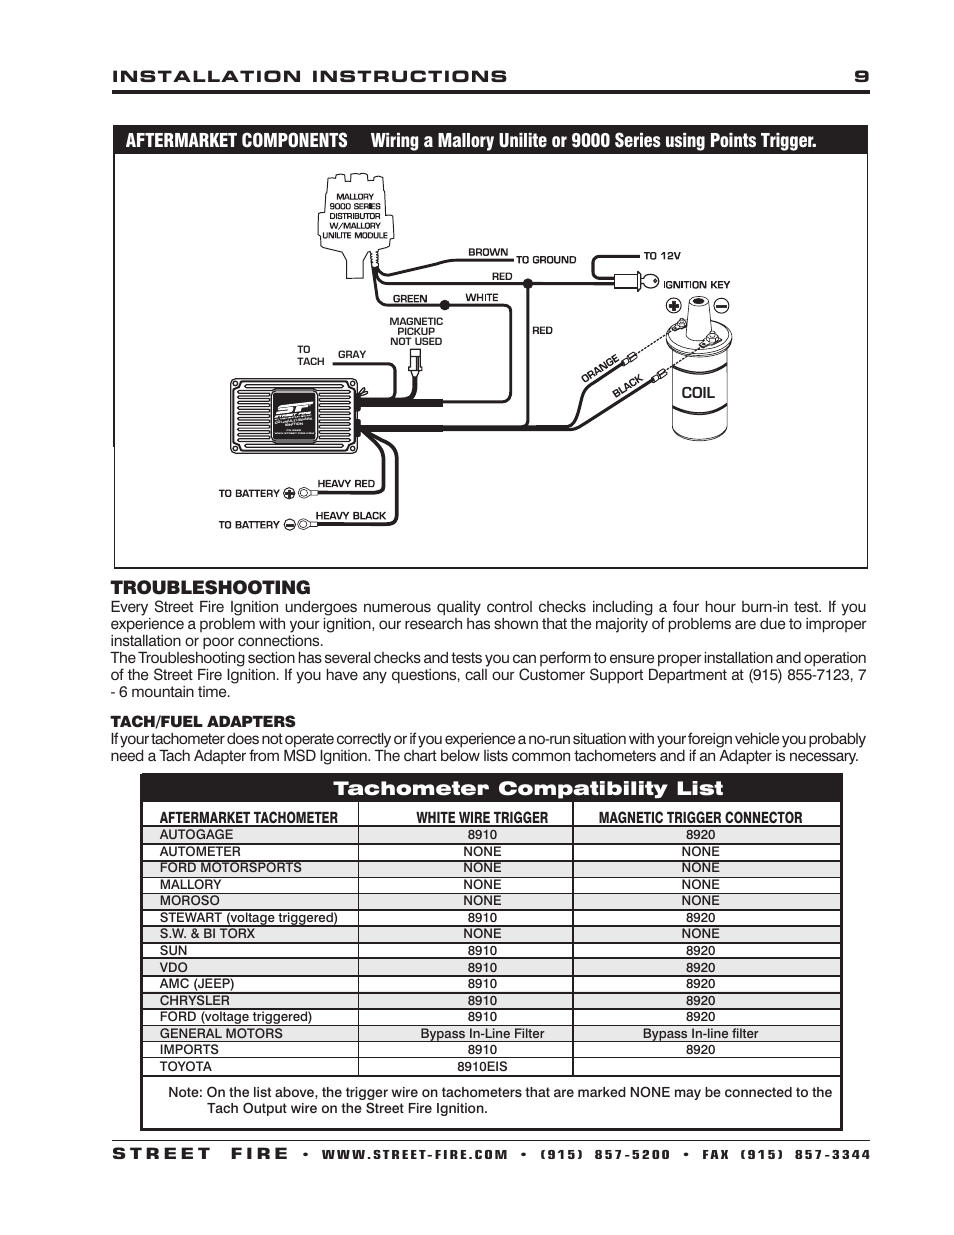 msd 5520 street fire ignition control installation page9?resize=665%2C861 mallory high fire ignition wiring diagrams mallory dist wiring mallory 6al wiring diagram at cos-gaming.co